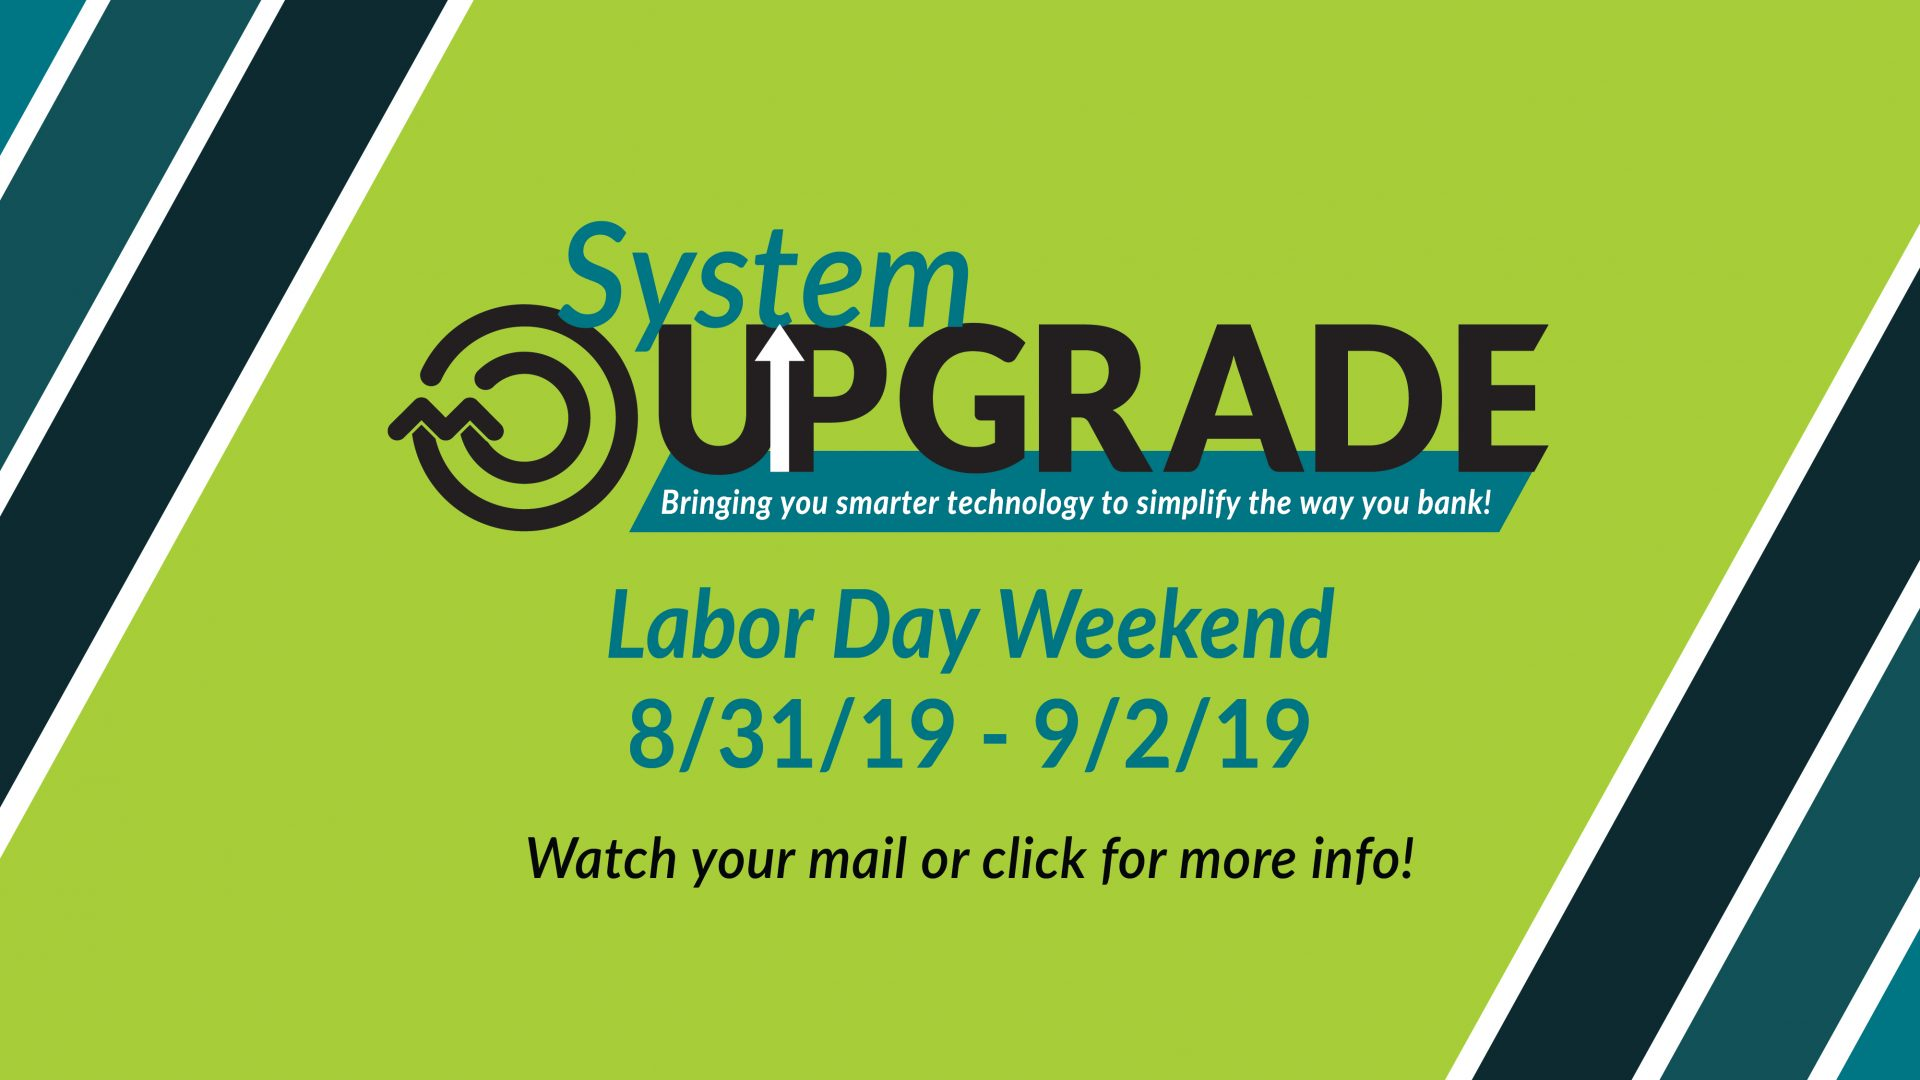 Members Community Credit Union System Upgrade Labor Day Weekend August 31, 2019 through September 2, 2019. Watch your mail or click for more info.